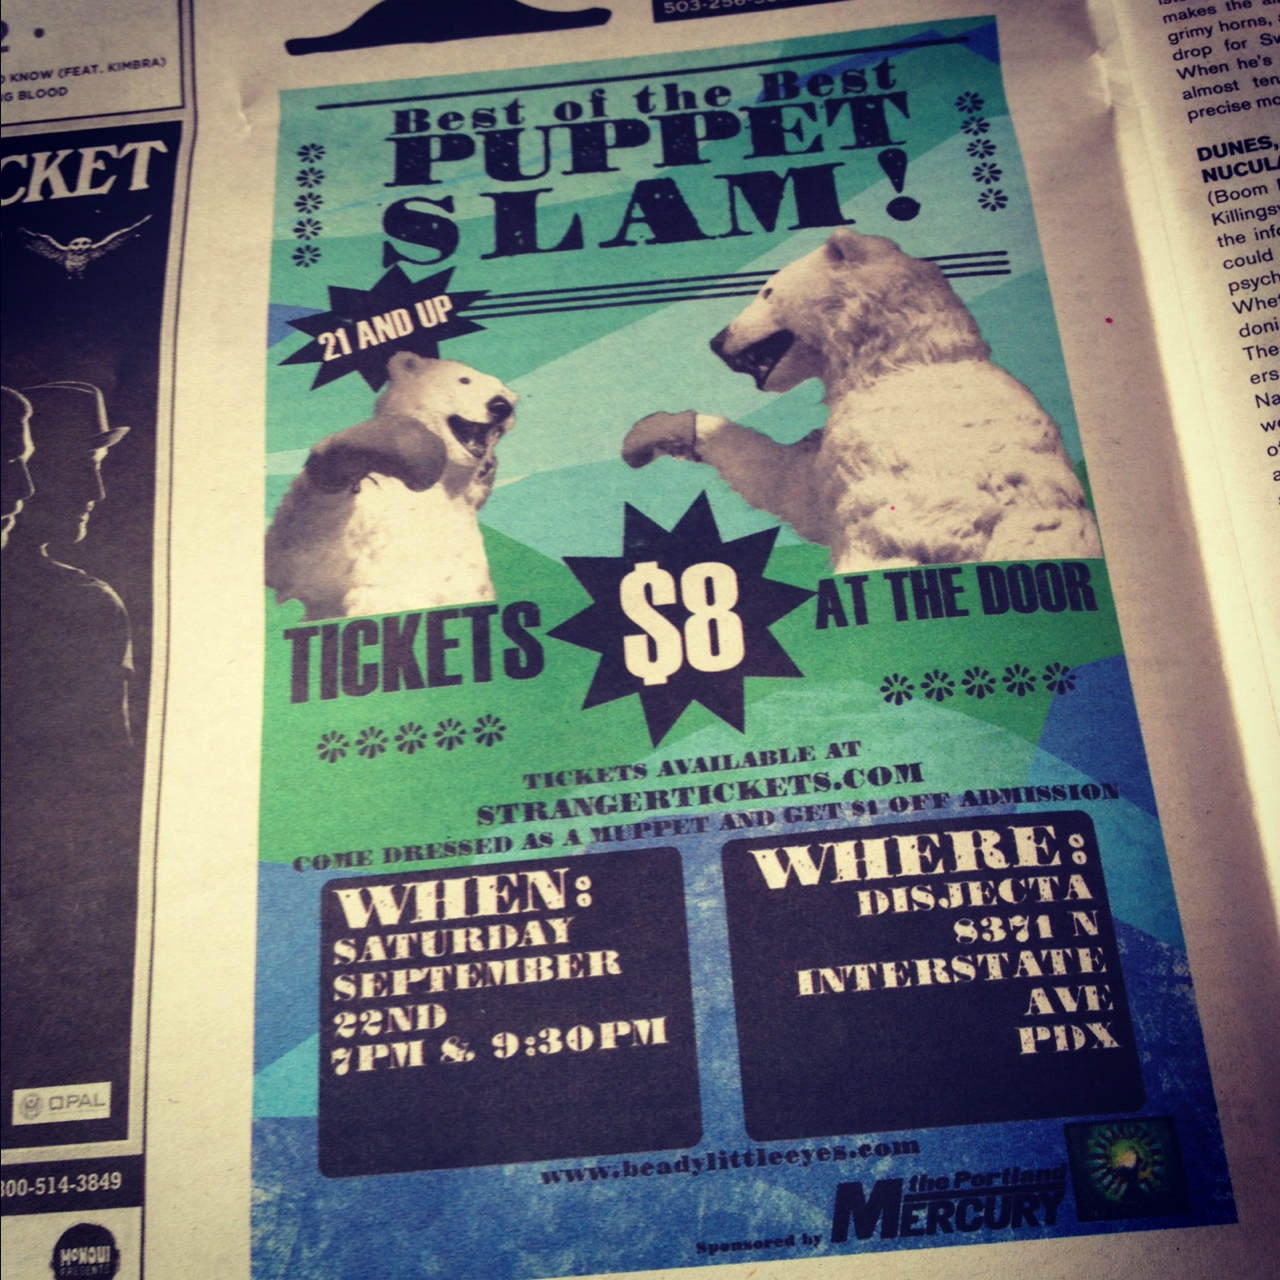 The next puppet slam is getting some press action. Oh, snap!   Buy tickets today:   7pm show  and  9:30pm show